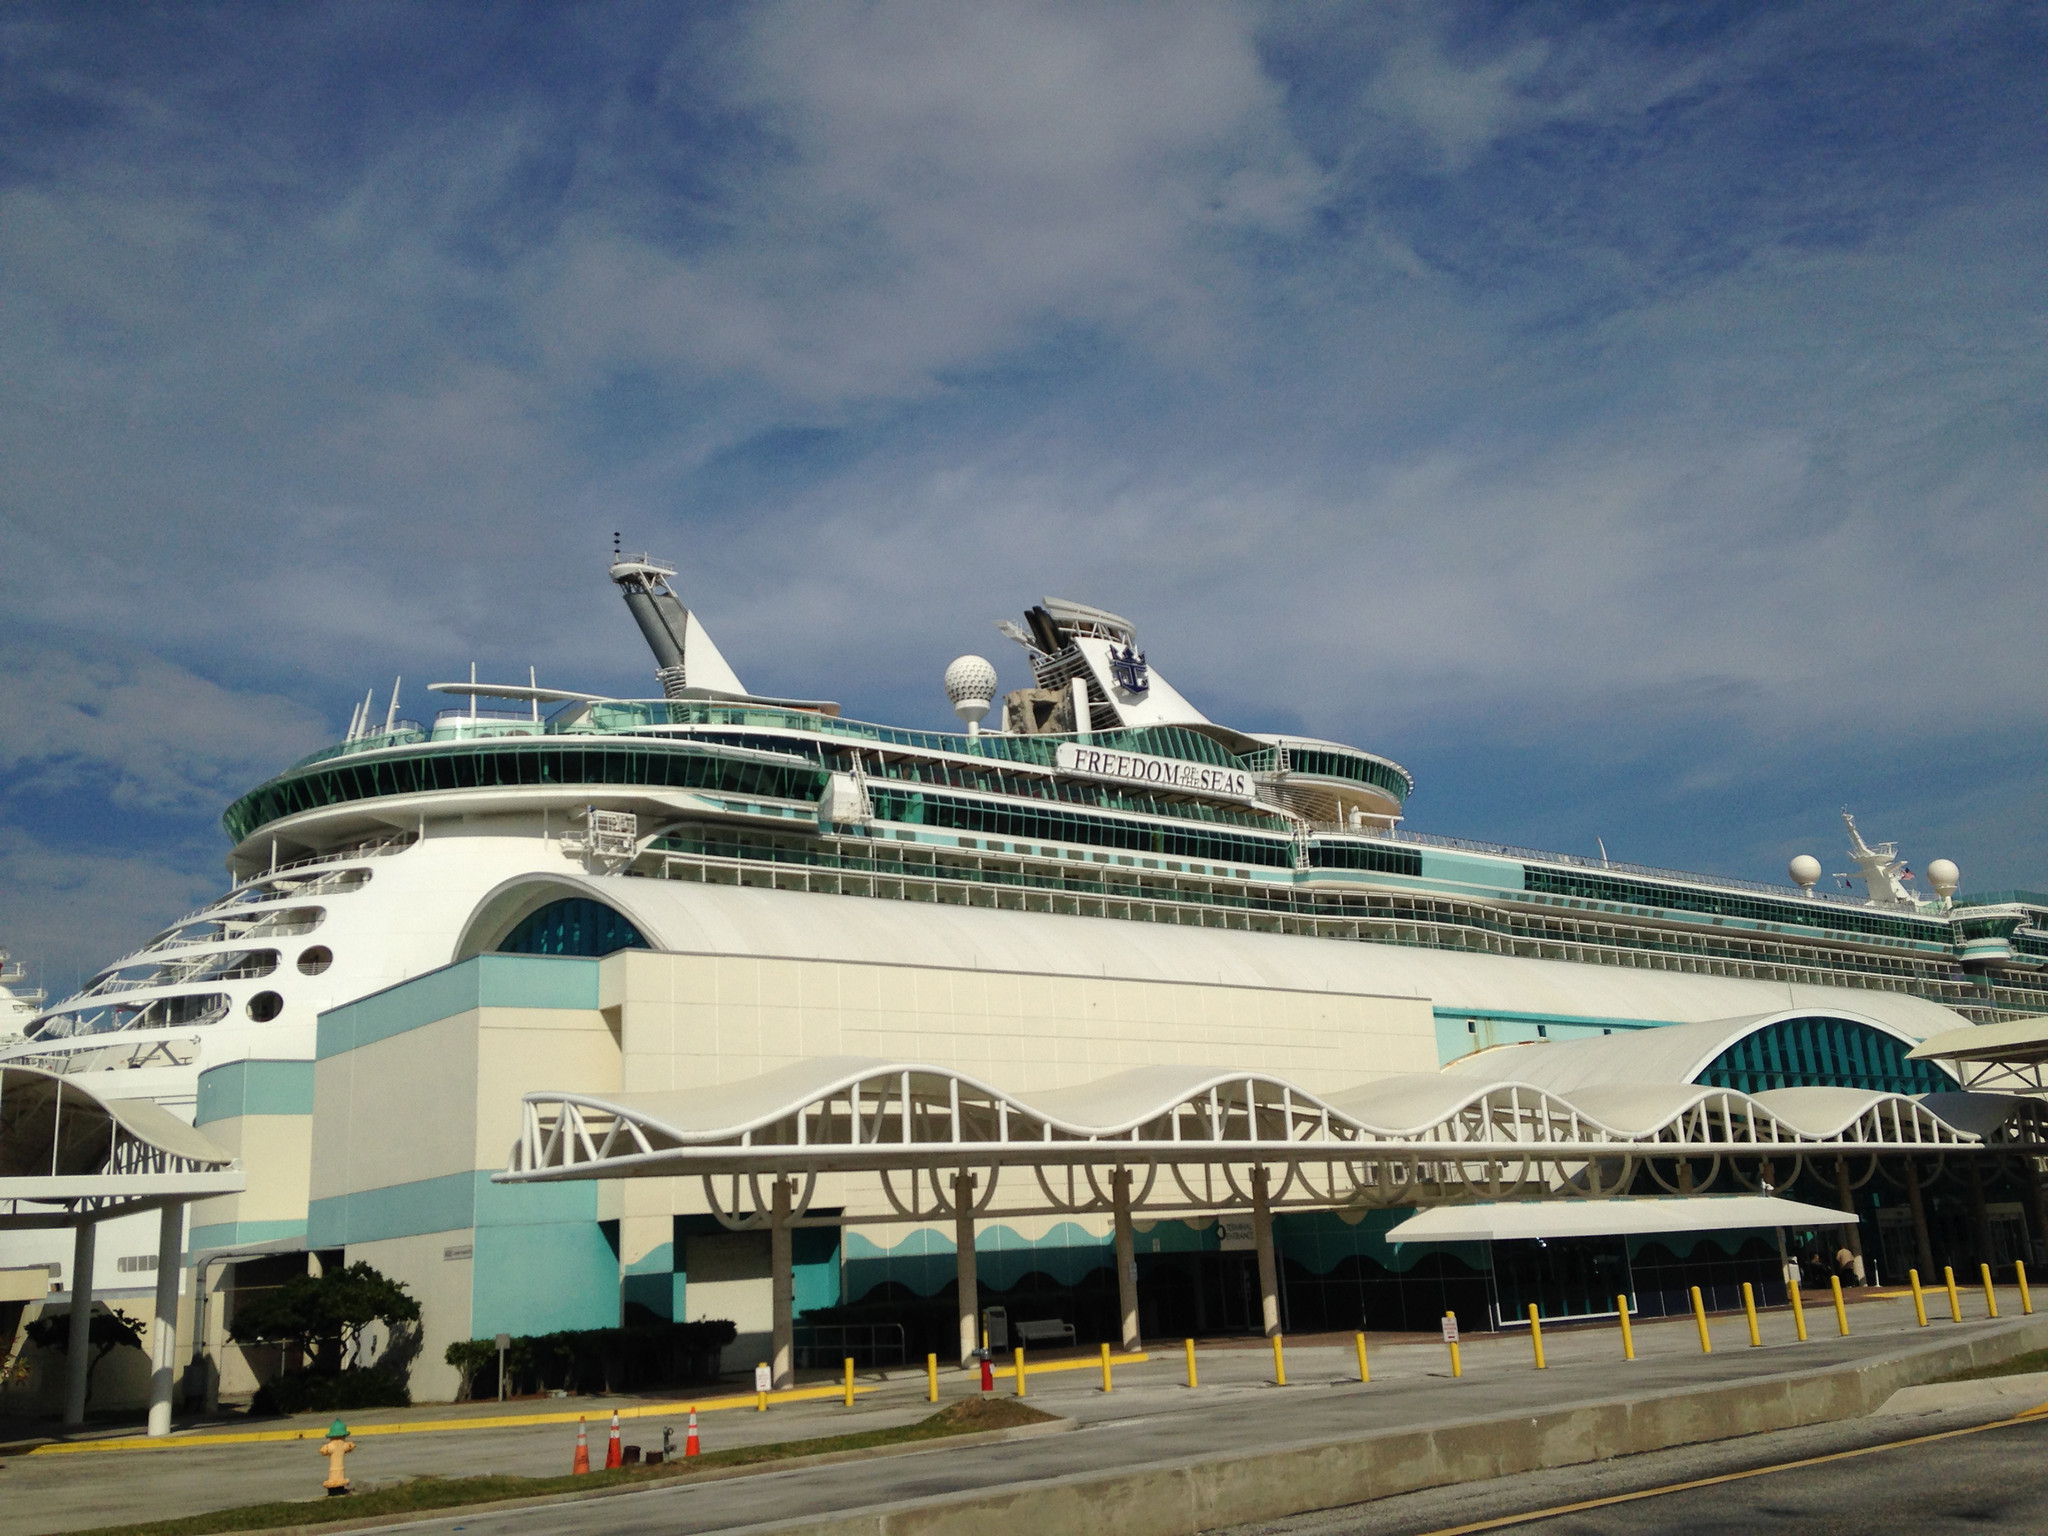 Six Cruise Ships Dock At Port Canaveral Orlando Sentinel - Cruise ship schedule port canaveral